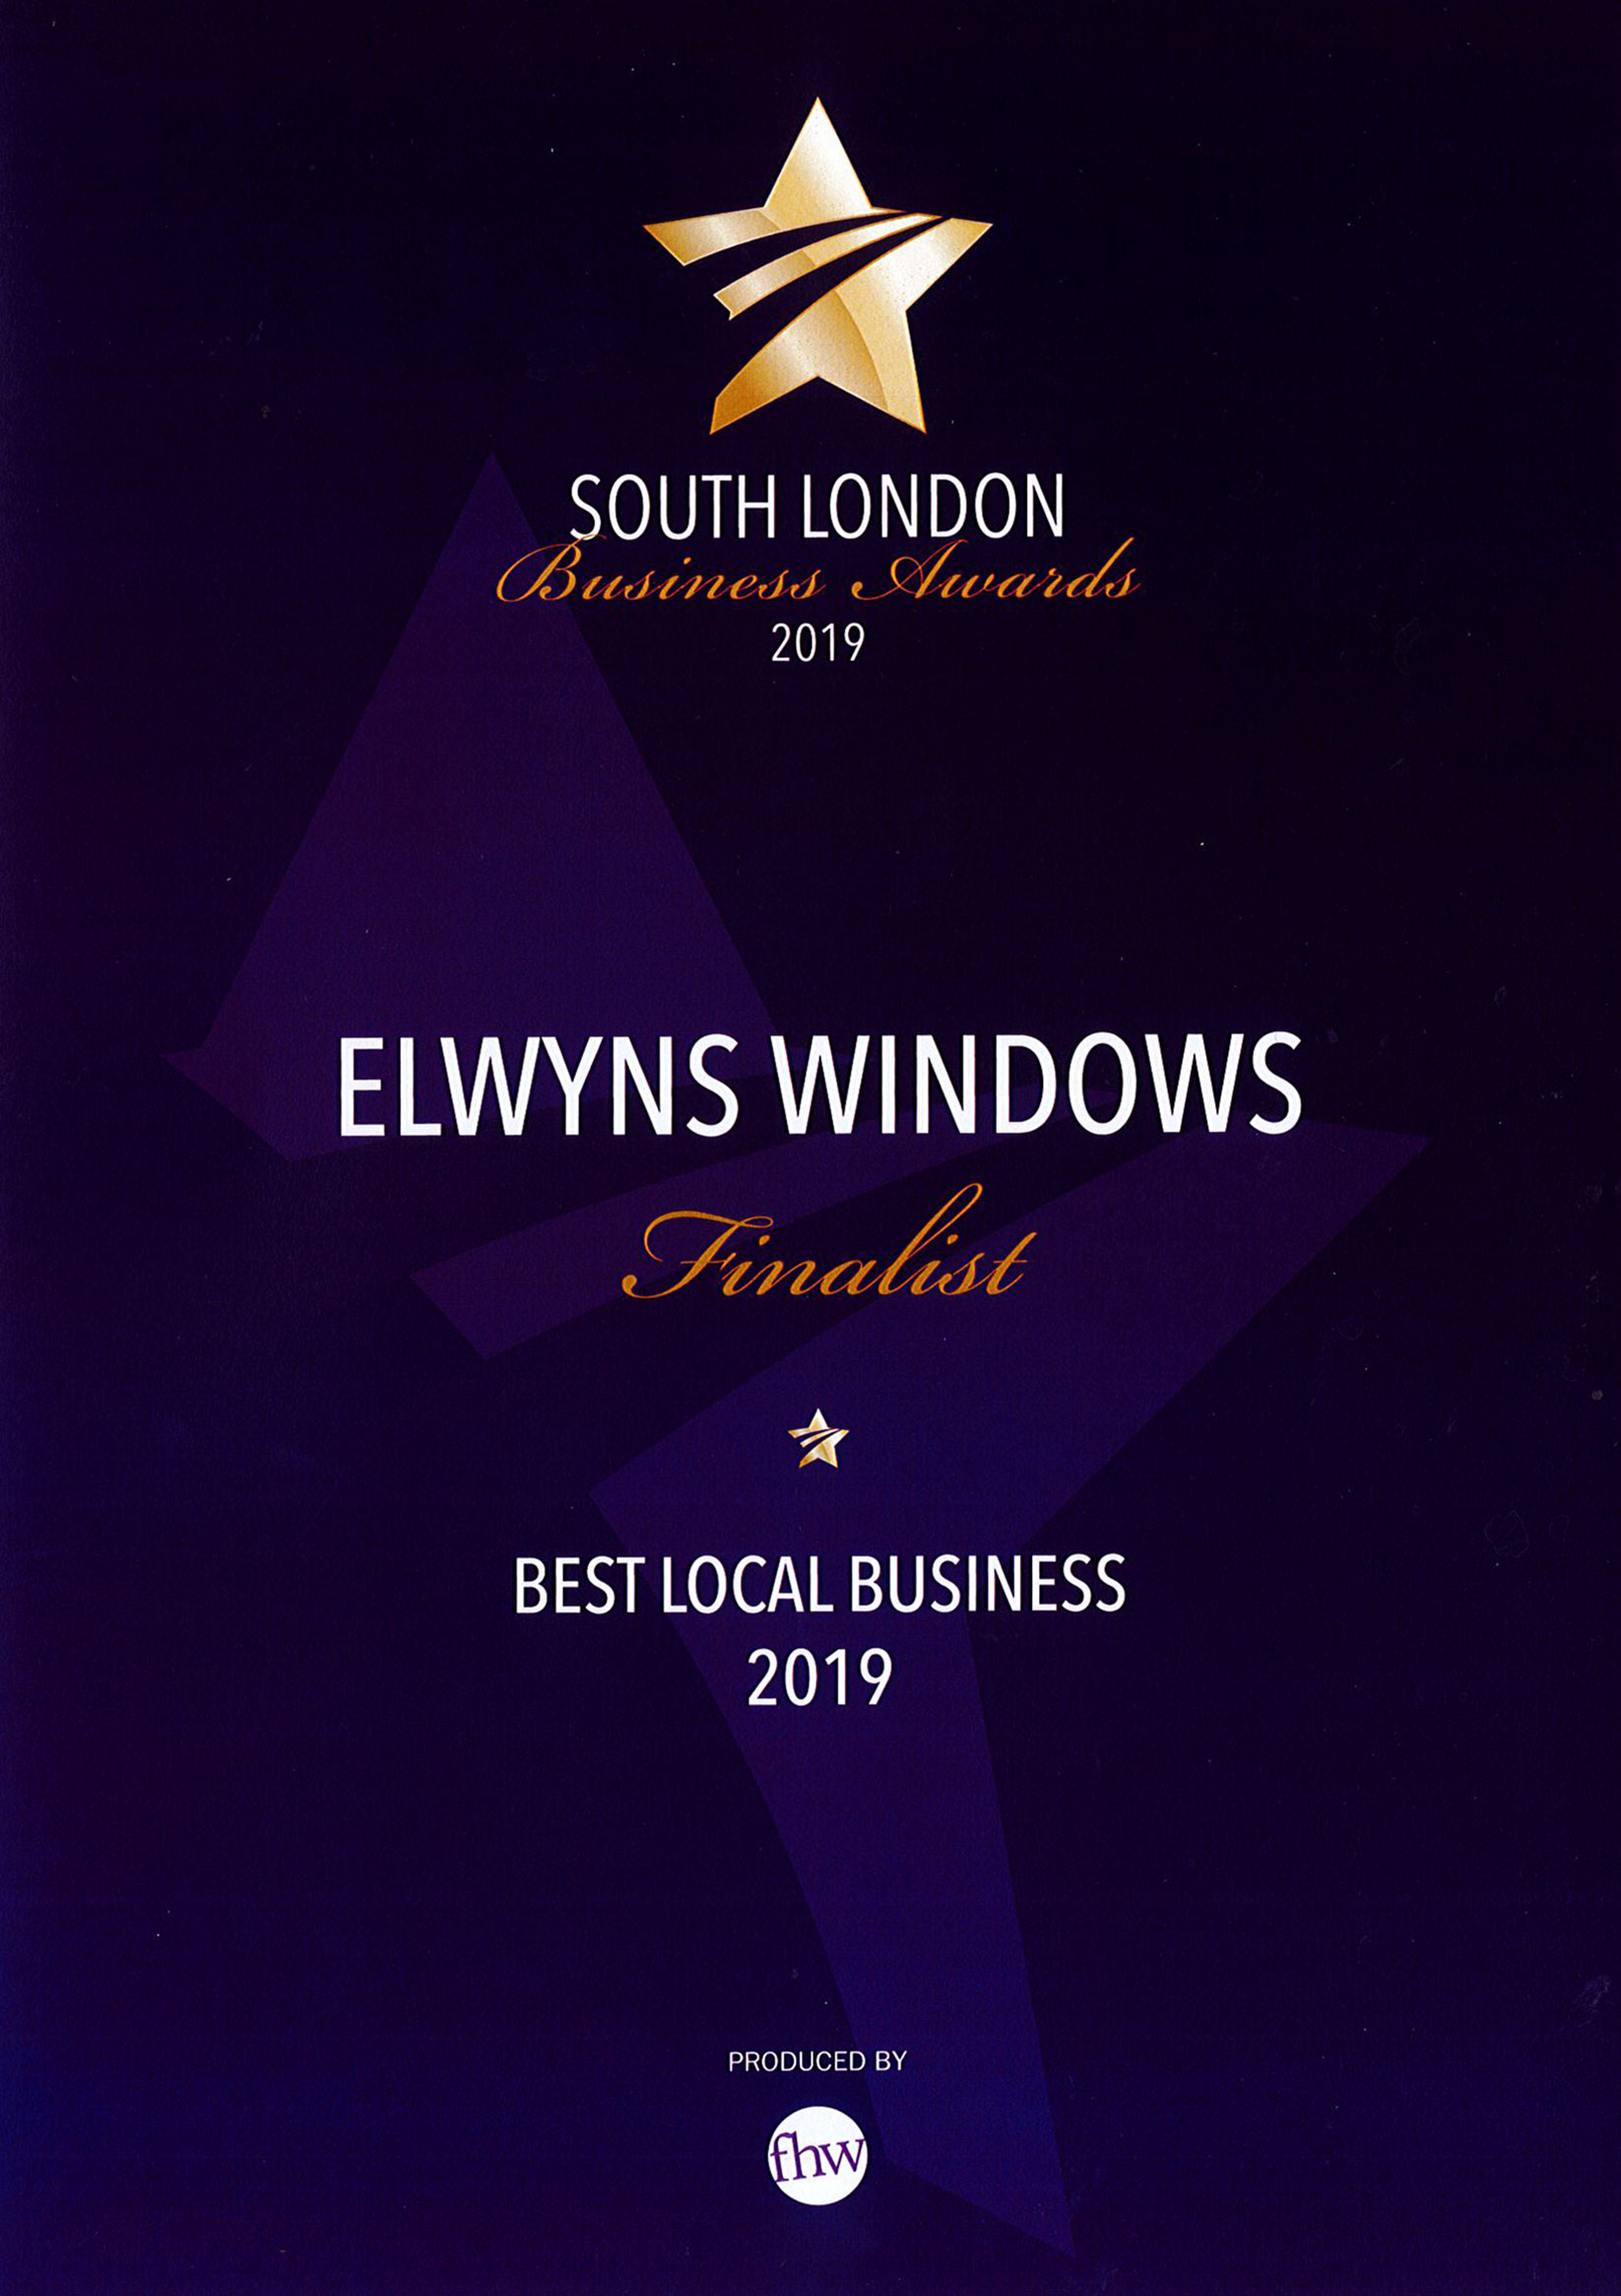 South London Business Awards 2019 - Best Local Business